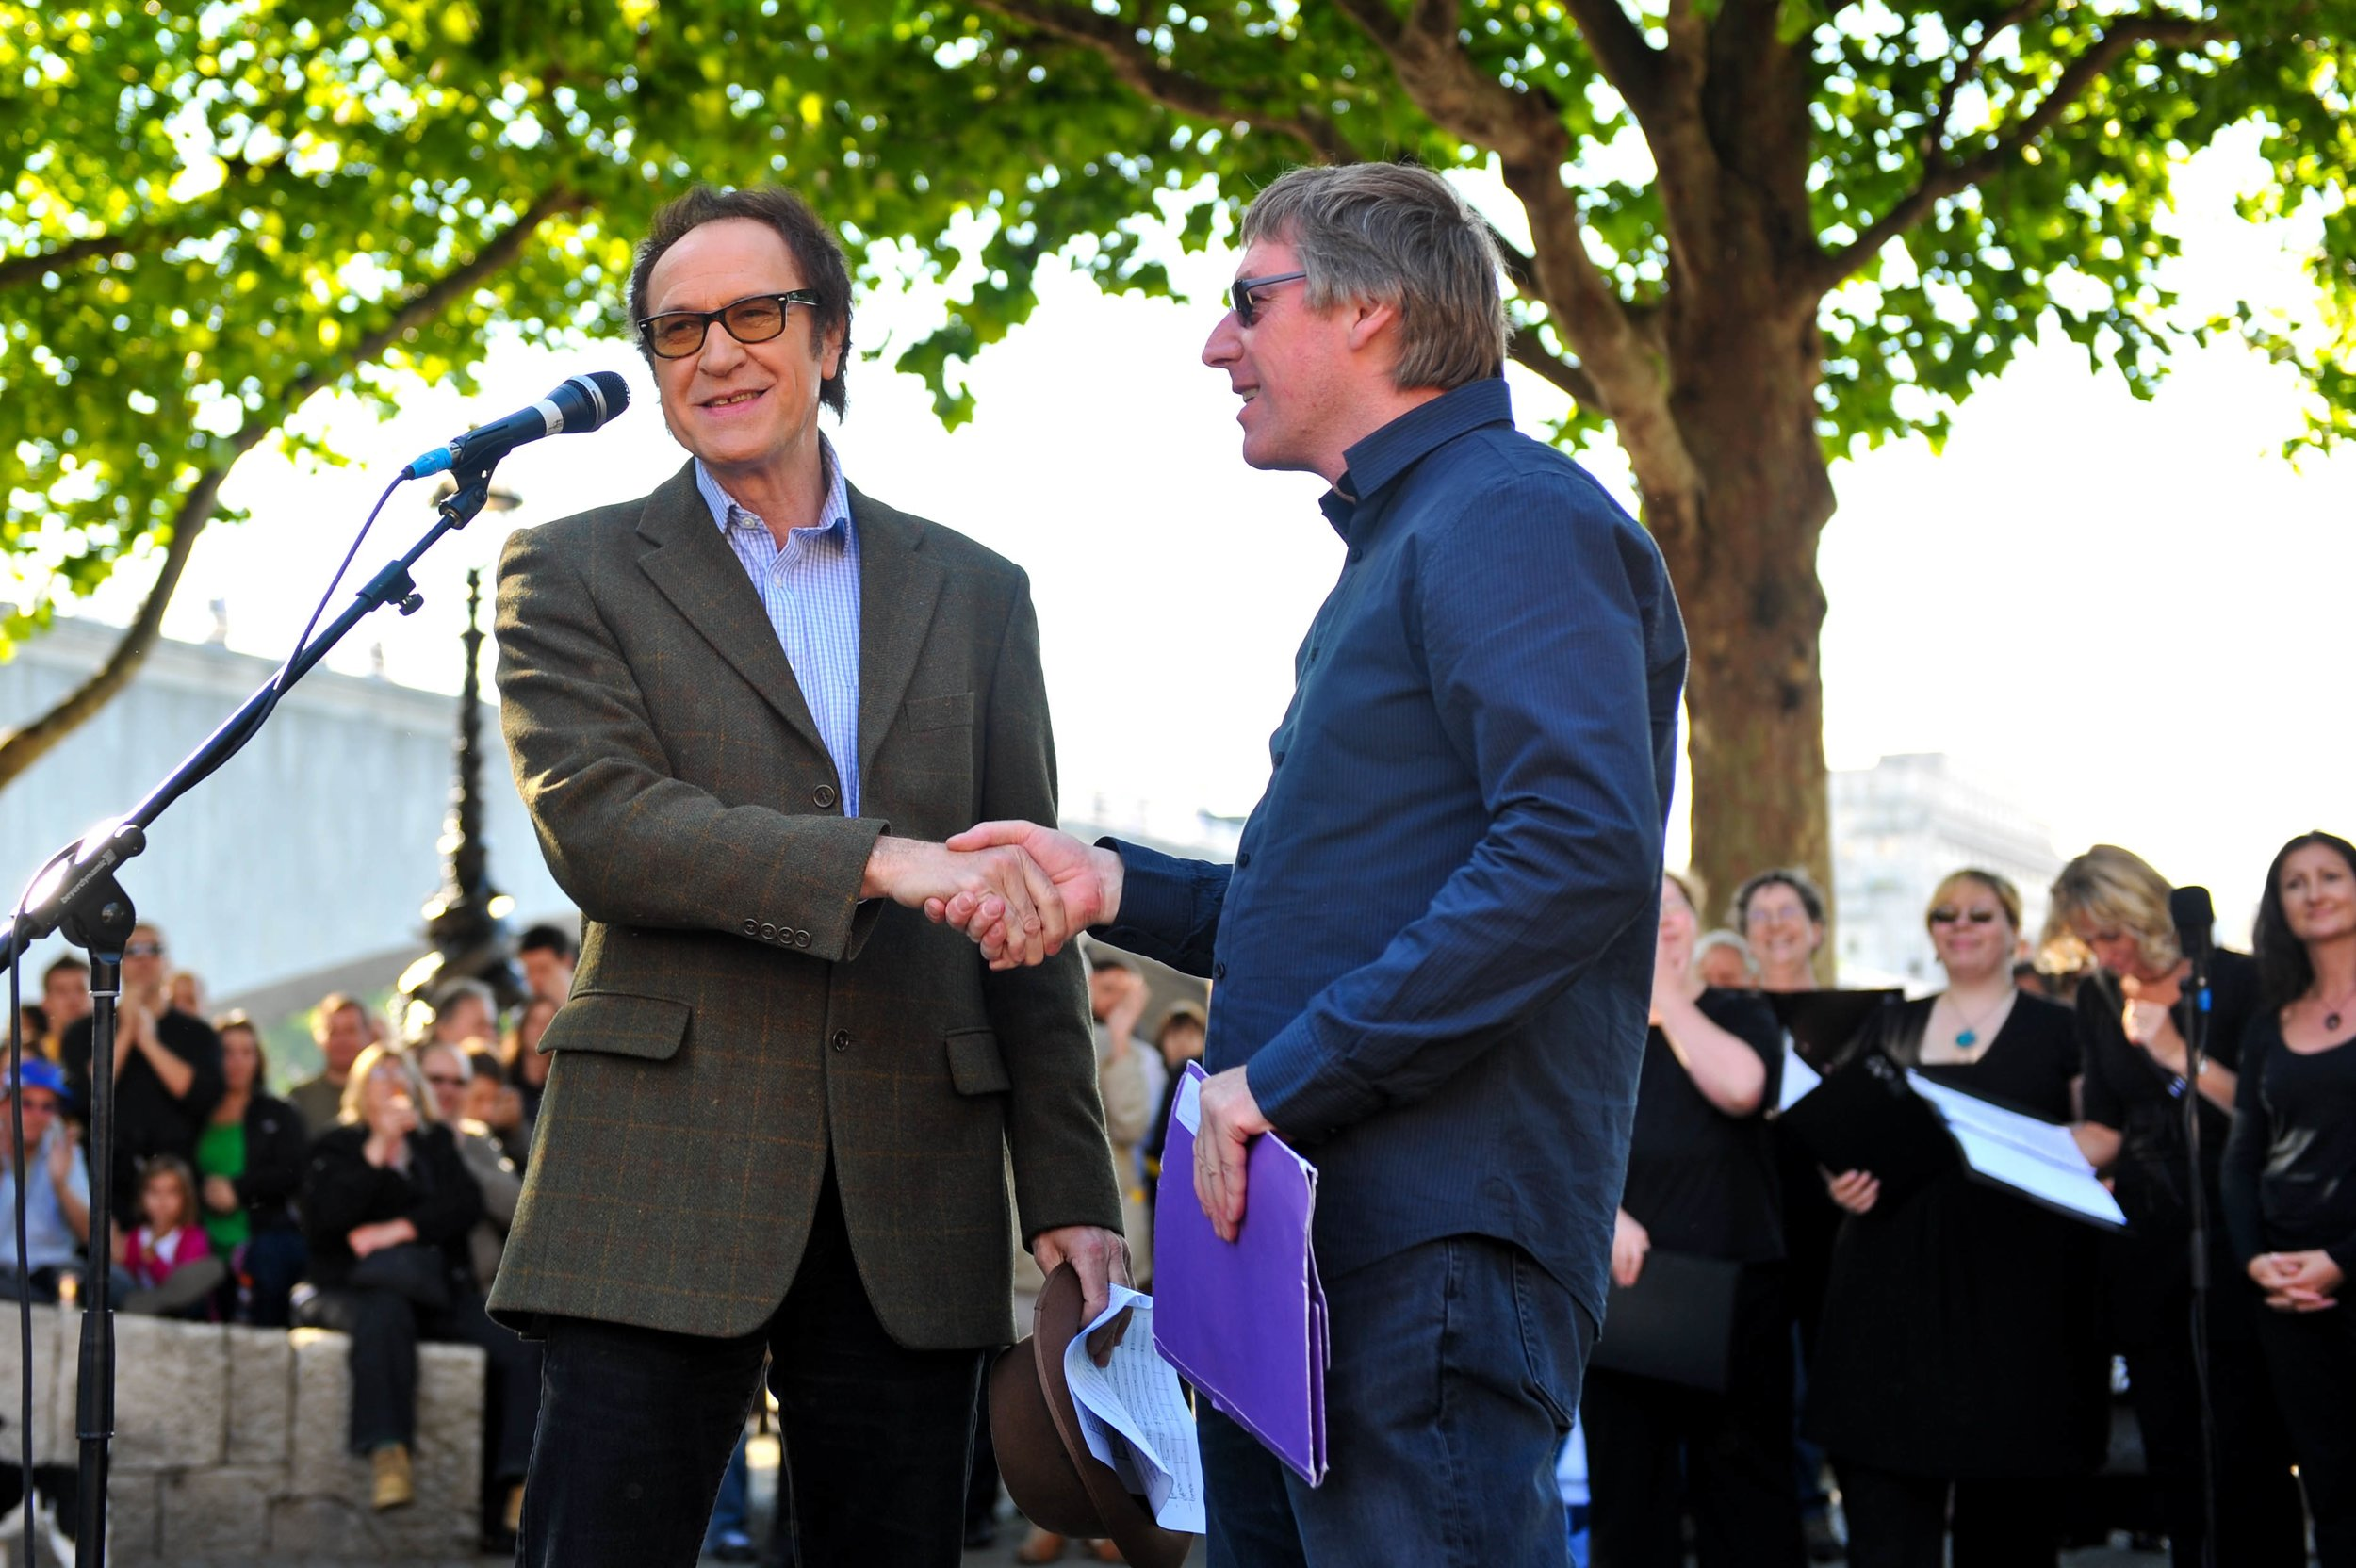 David with Sir Ray Davies CBE -  sunset at Waterloo in 2009